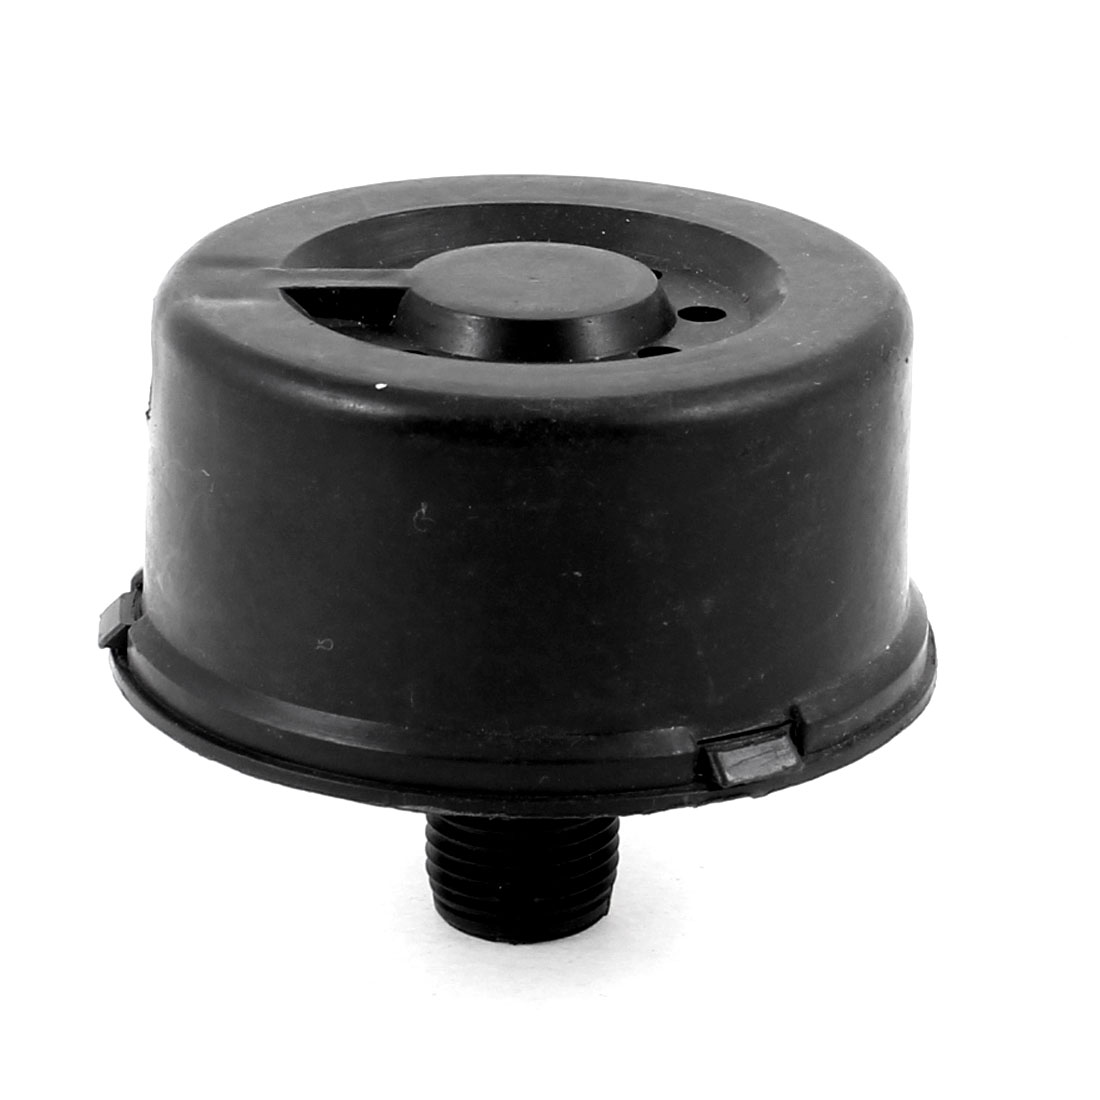 Air Compressor Part 16mm Male Thread Filter Silencer Muffler Black